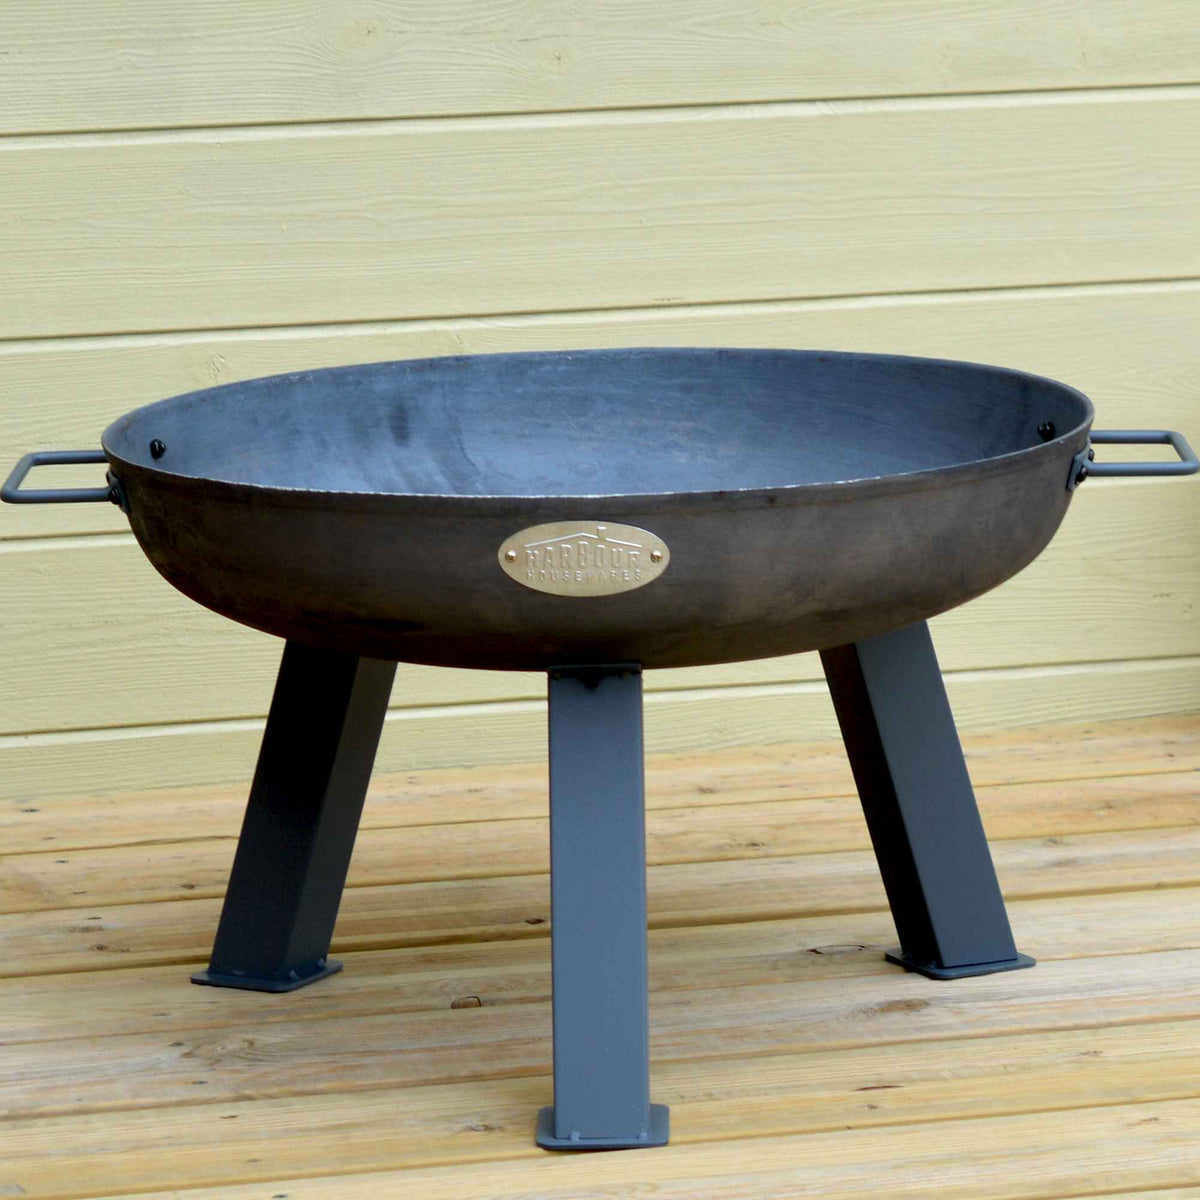 Harbour Housewares Cast Iron Garden Fire Pit Burner - 55.5cm Diameter